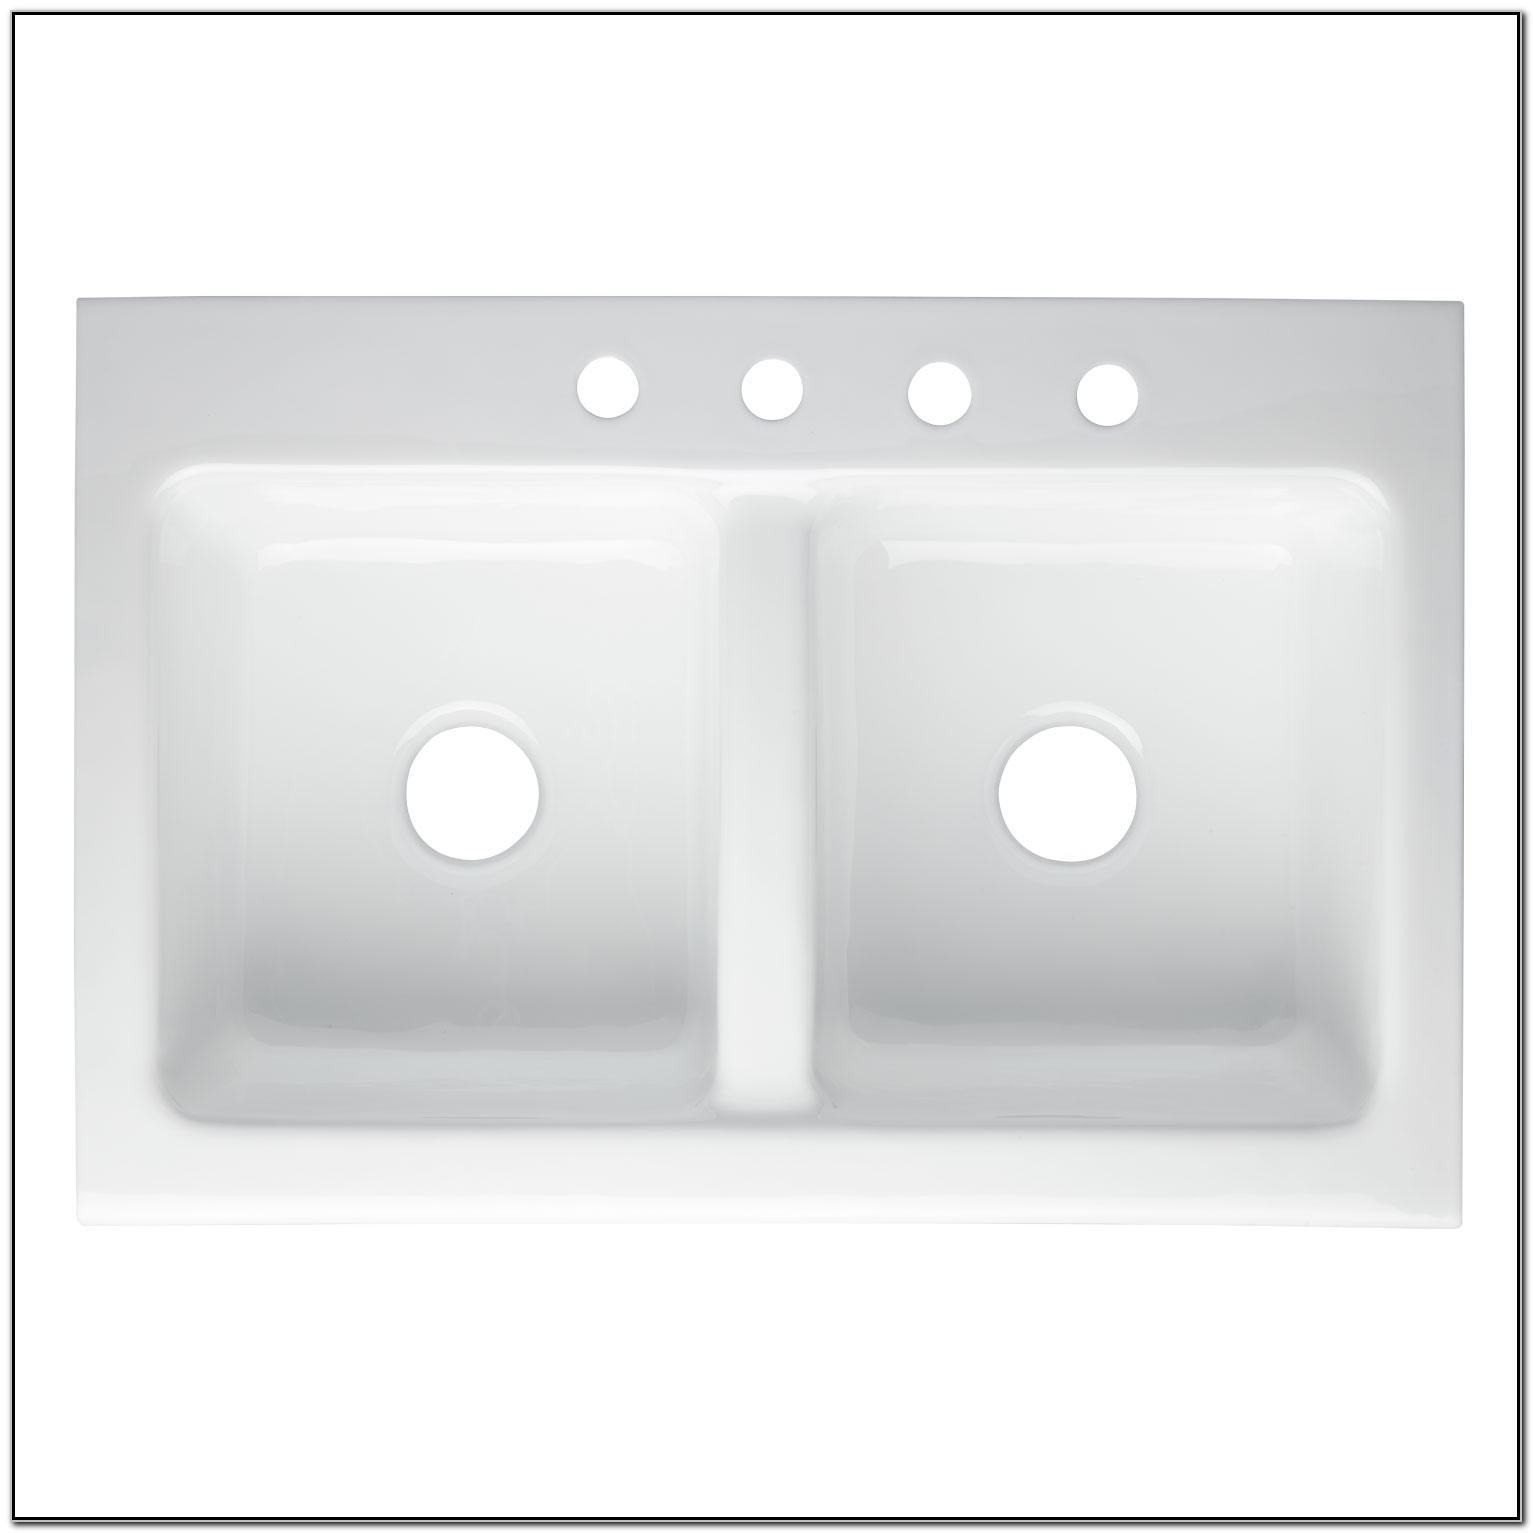 Farmhouse Sink With Faucet Holes